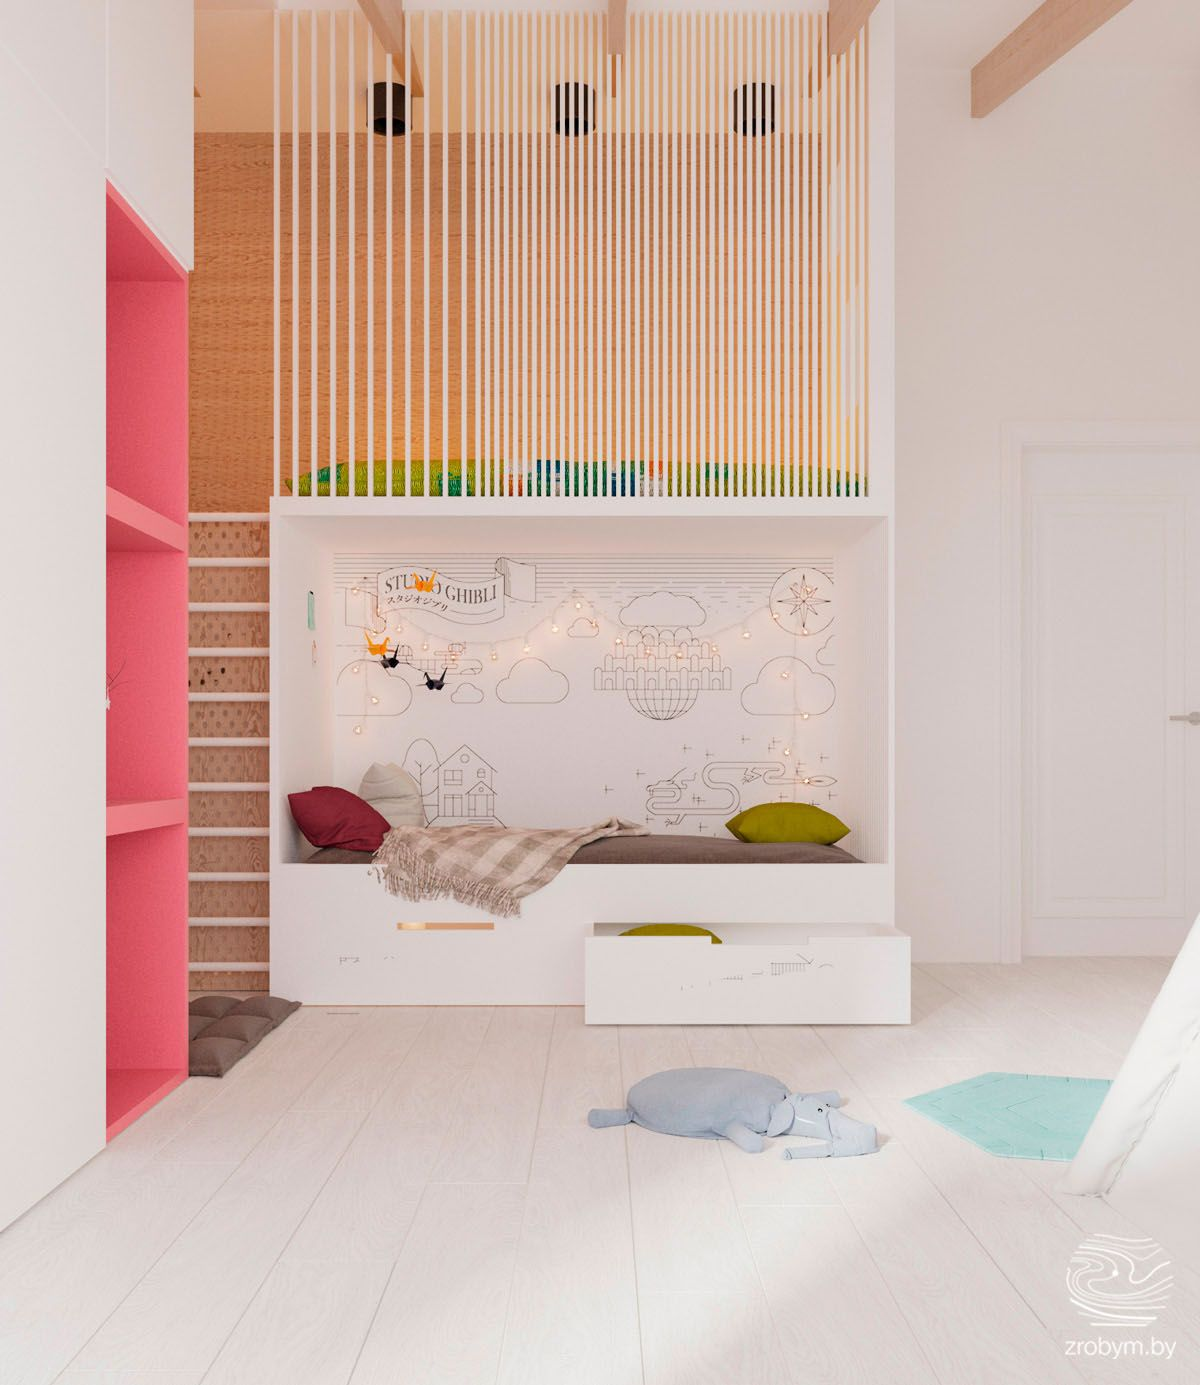 Ideas Para Decorar Un Dormitorio Pequeño Ideas Para Decorar Un Dormitorio Infantil Con Zona De